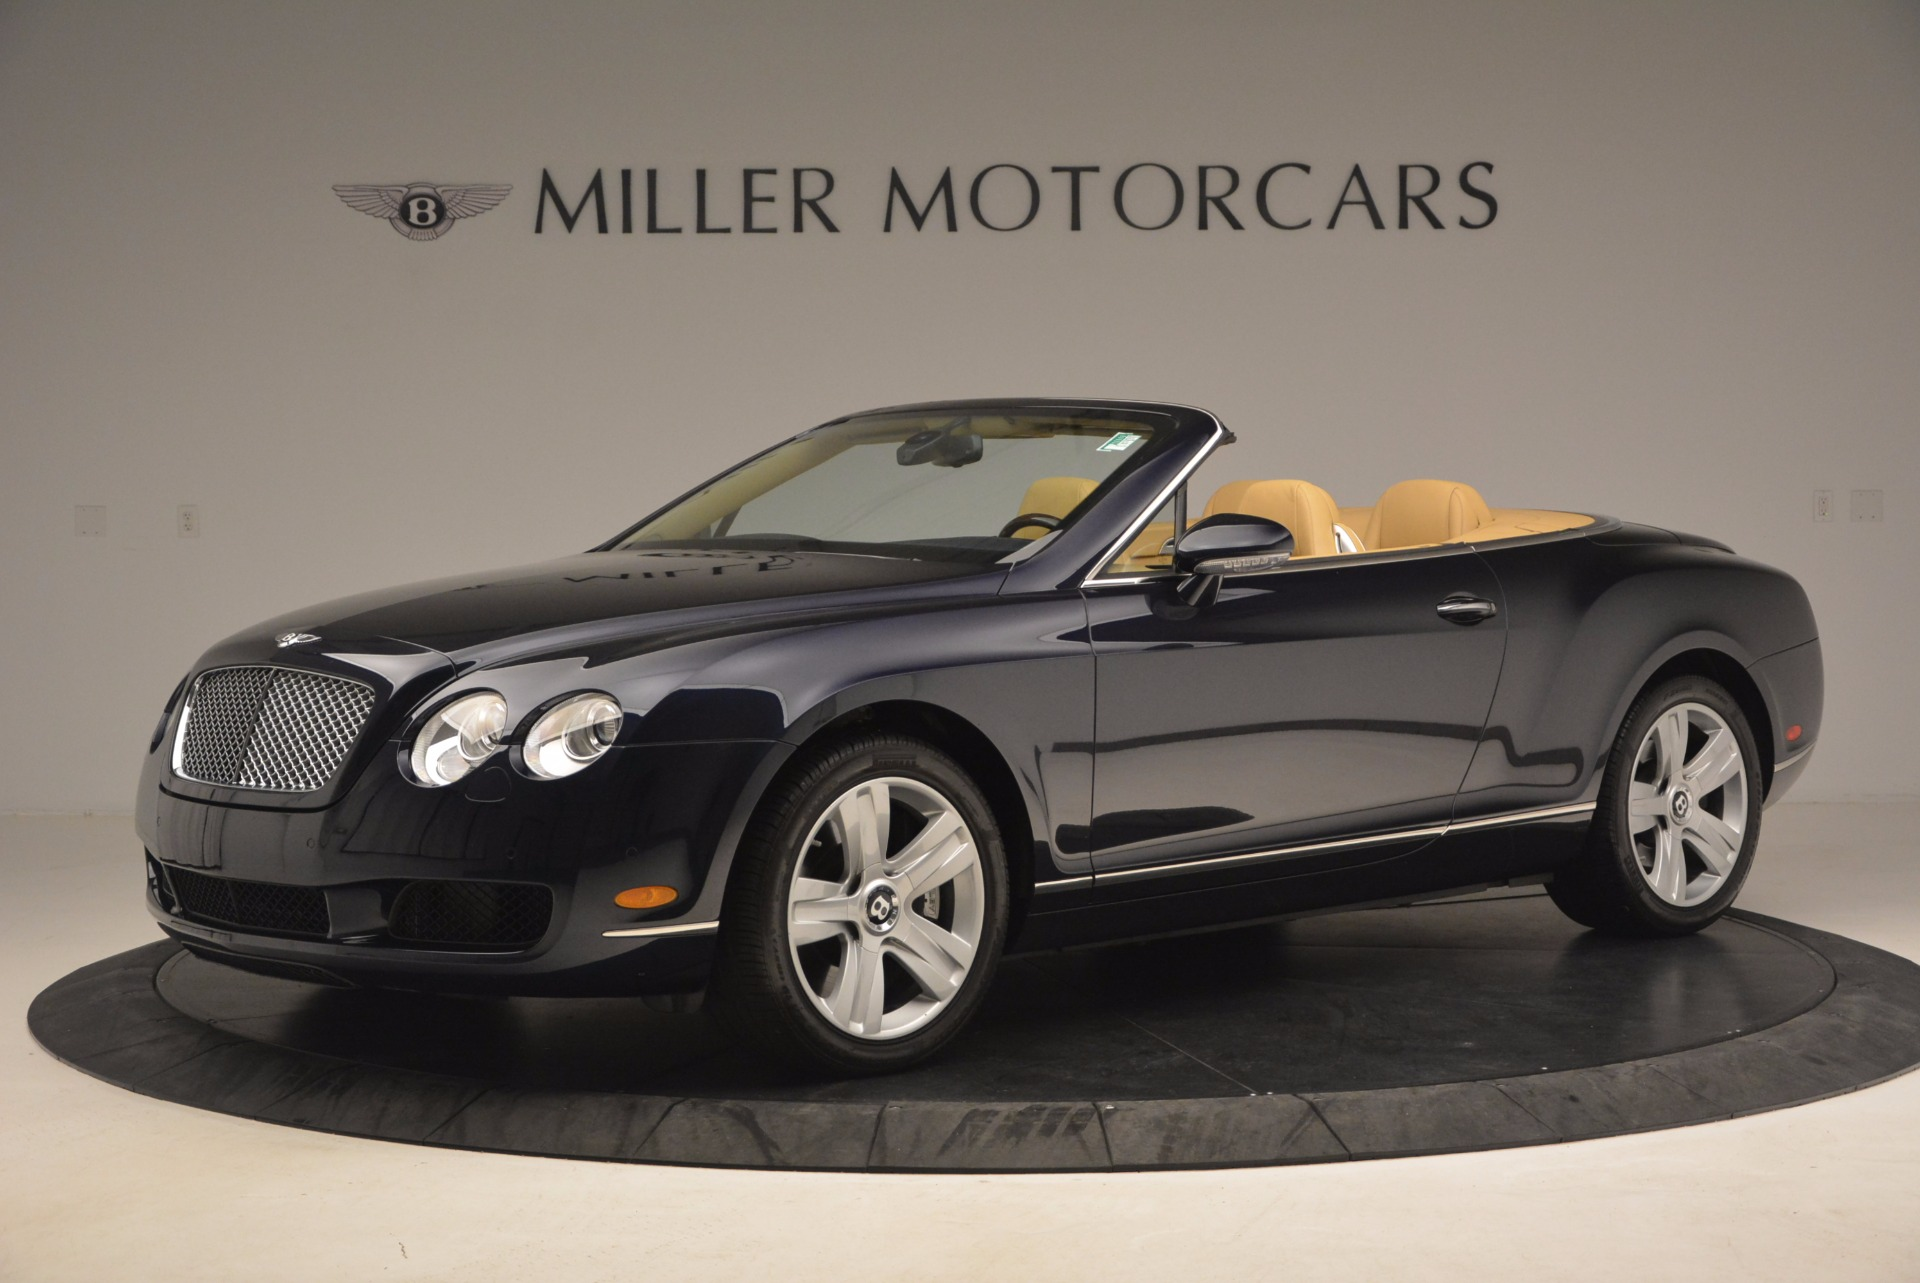 Used 2007 Bentley Continental GTC  For Sale In Westport, CT 1186_p2